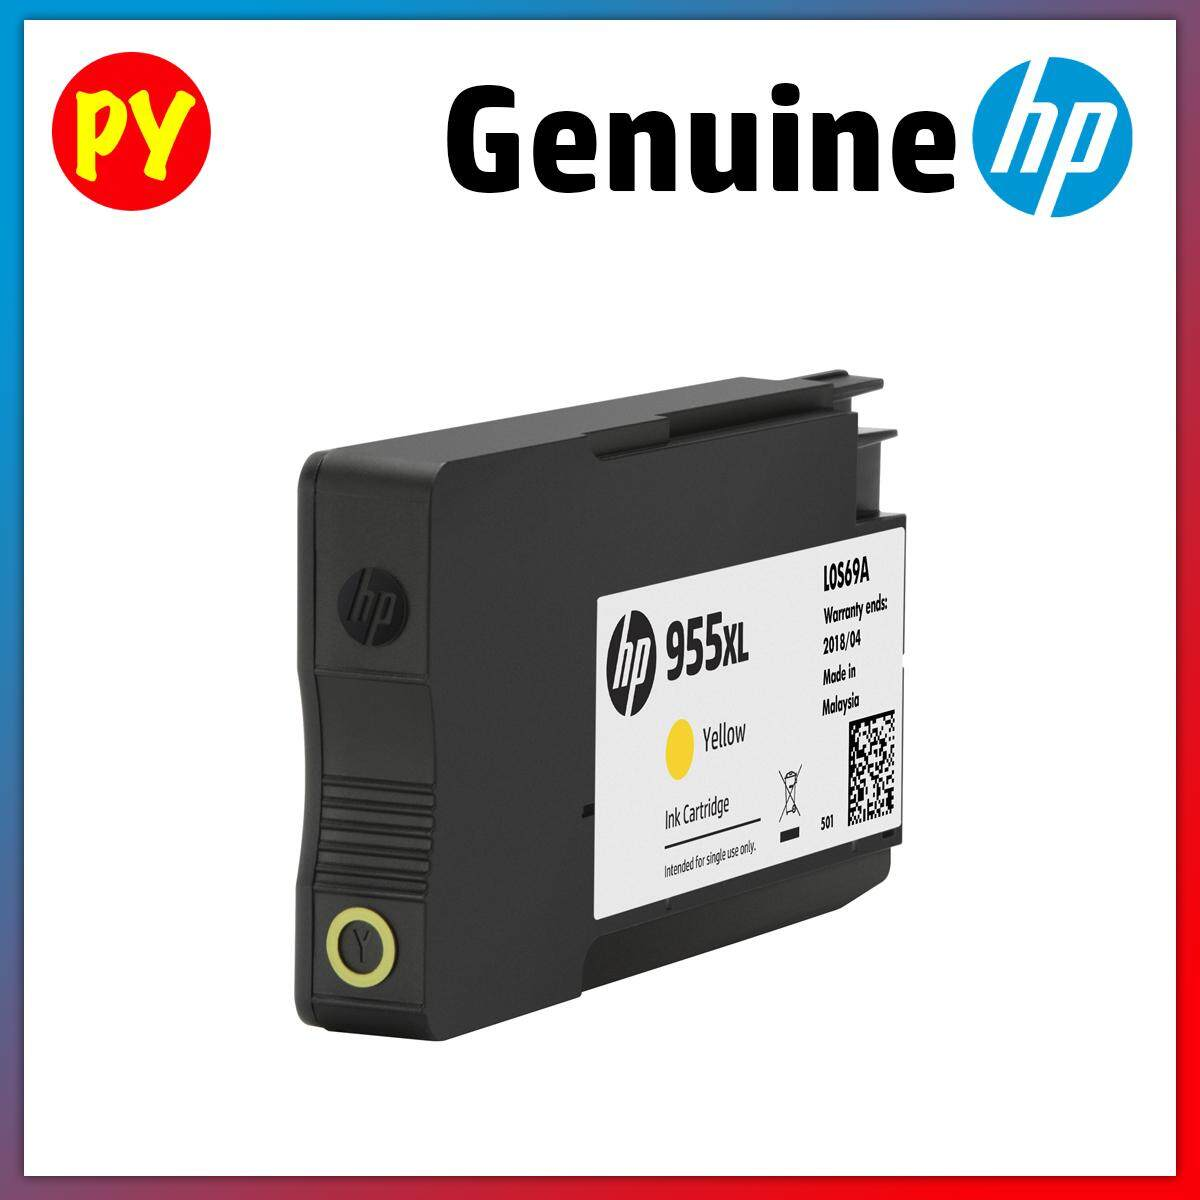 HP 955 / 955XL Original Ink Cartridge (Black, Cyan, Magenta, Yellow, Set) L0S60AA, L0S51AA, L0S54AA, L0S57AA, L0S72AA, L0S63AA, L0S66AA, L0S69AA - for HP OJ PRO 8720 / HP OJ PRO 8210